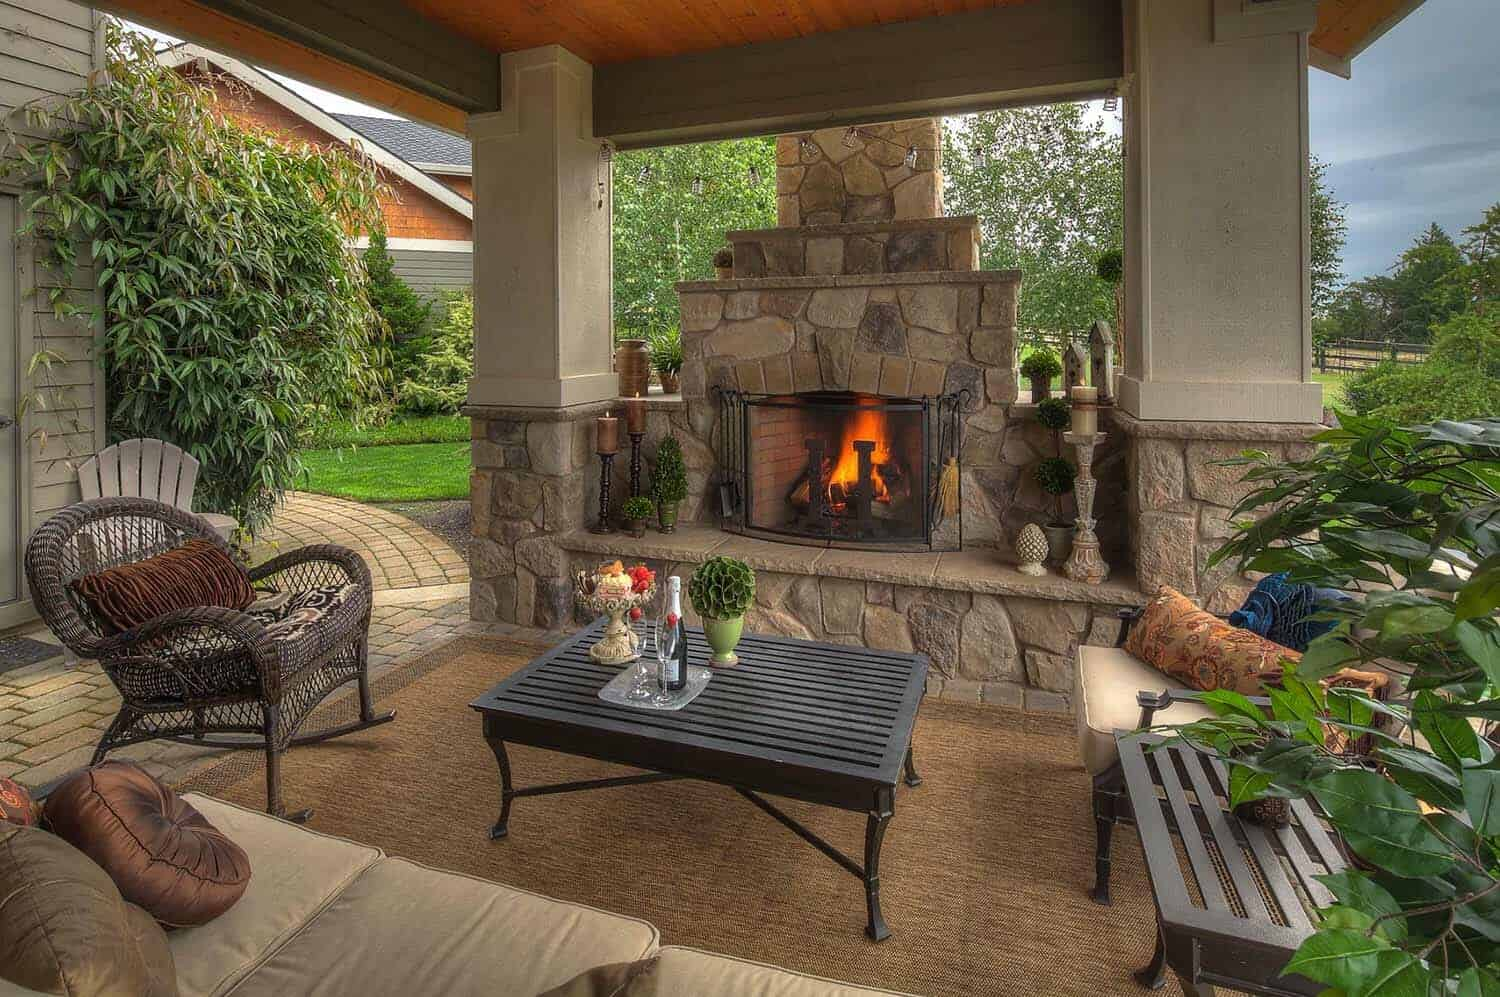 30+ Irresistible outdoor fireplace ideas that will leave ... on Outdoor Fireplaces Ideas  id=86784